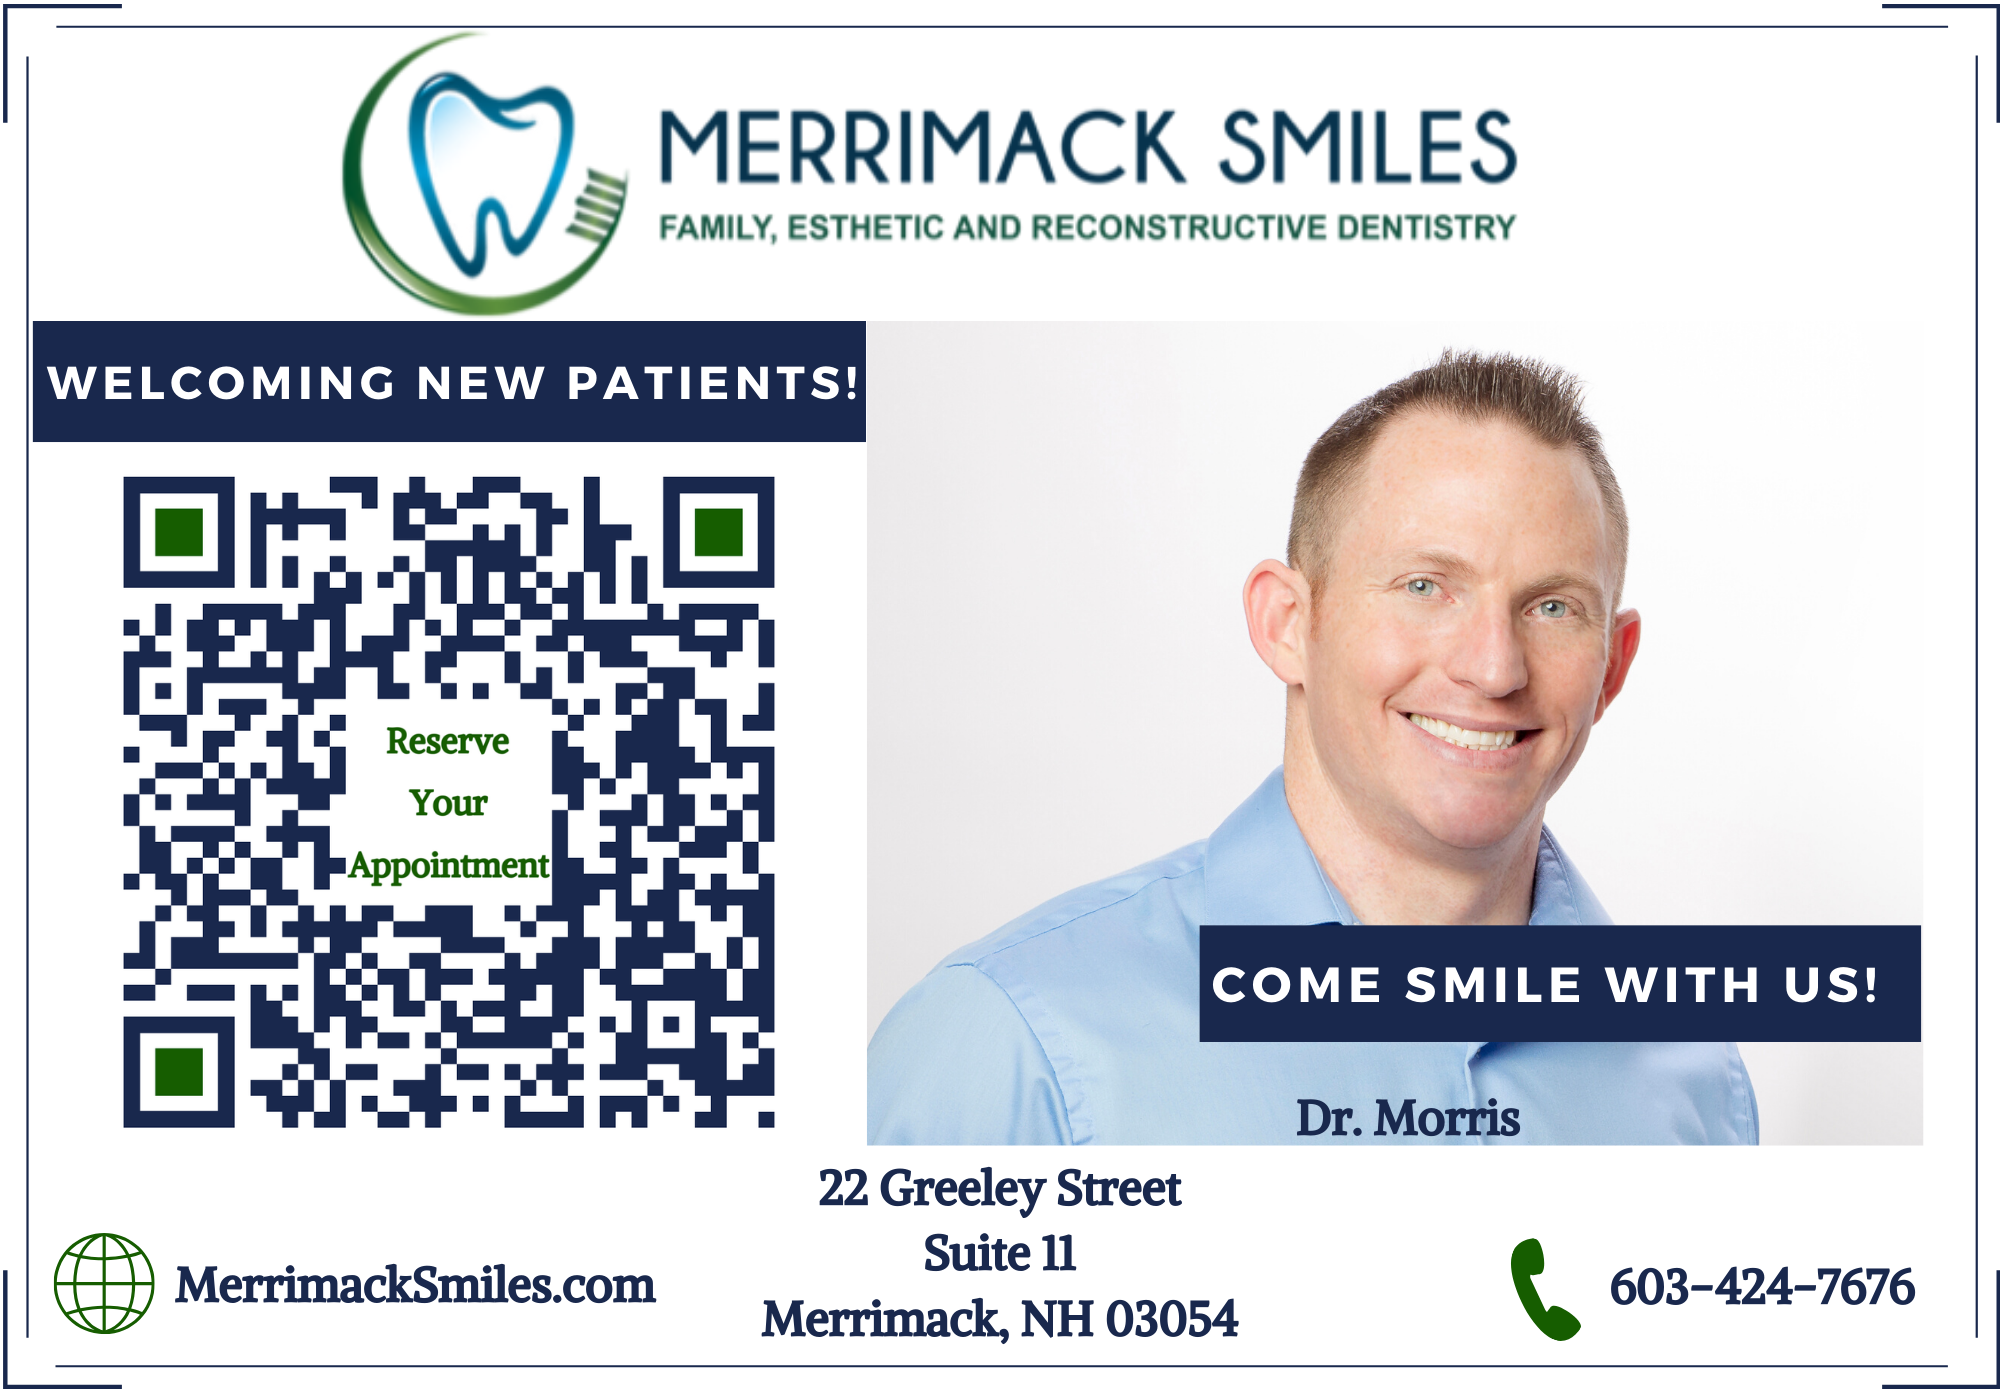 Merrimack Smiles reviews | 22 Greeley Street - Merrimack NH